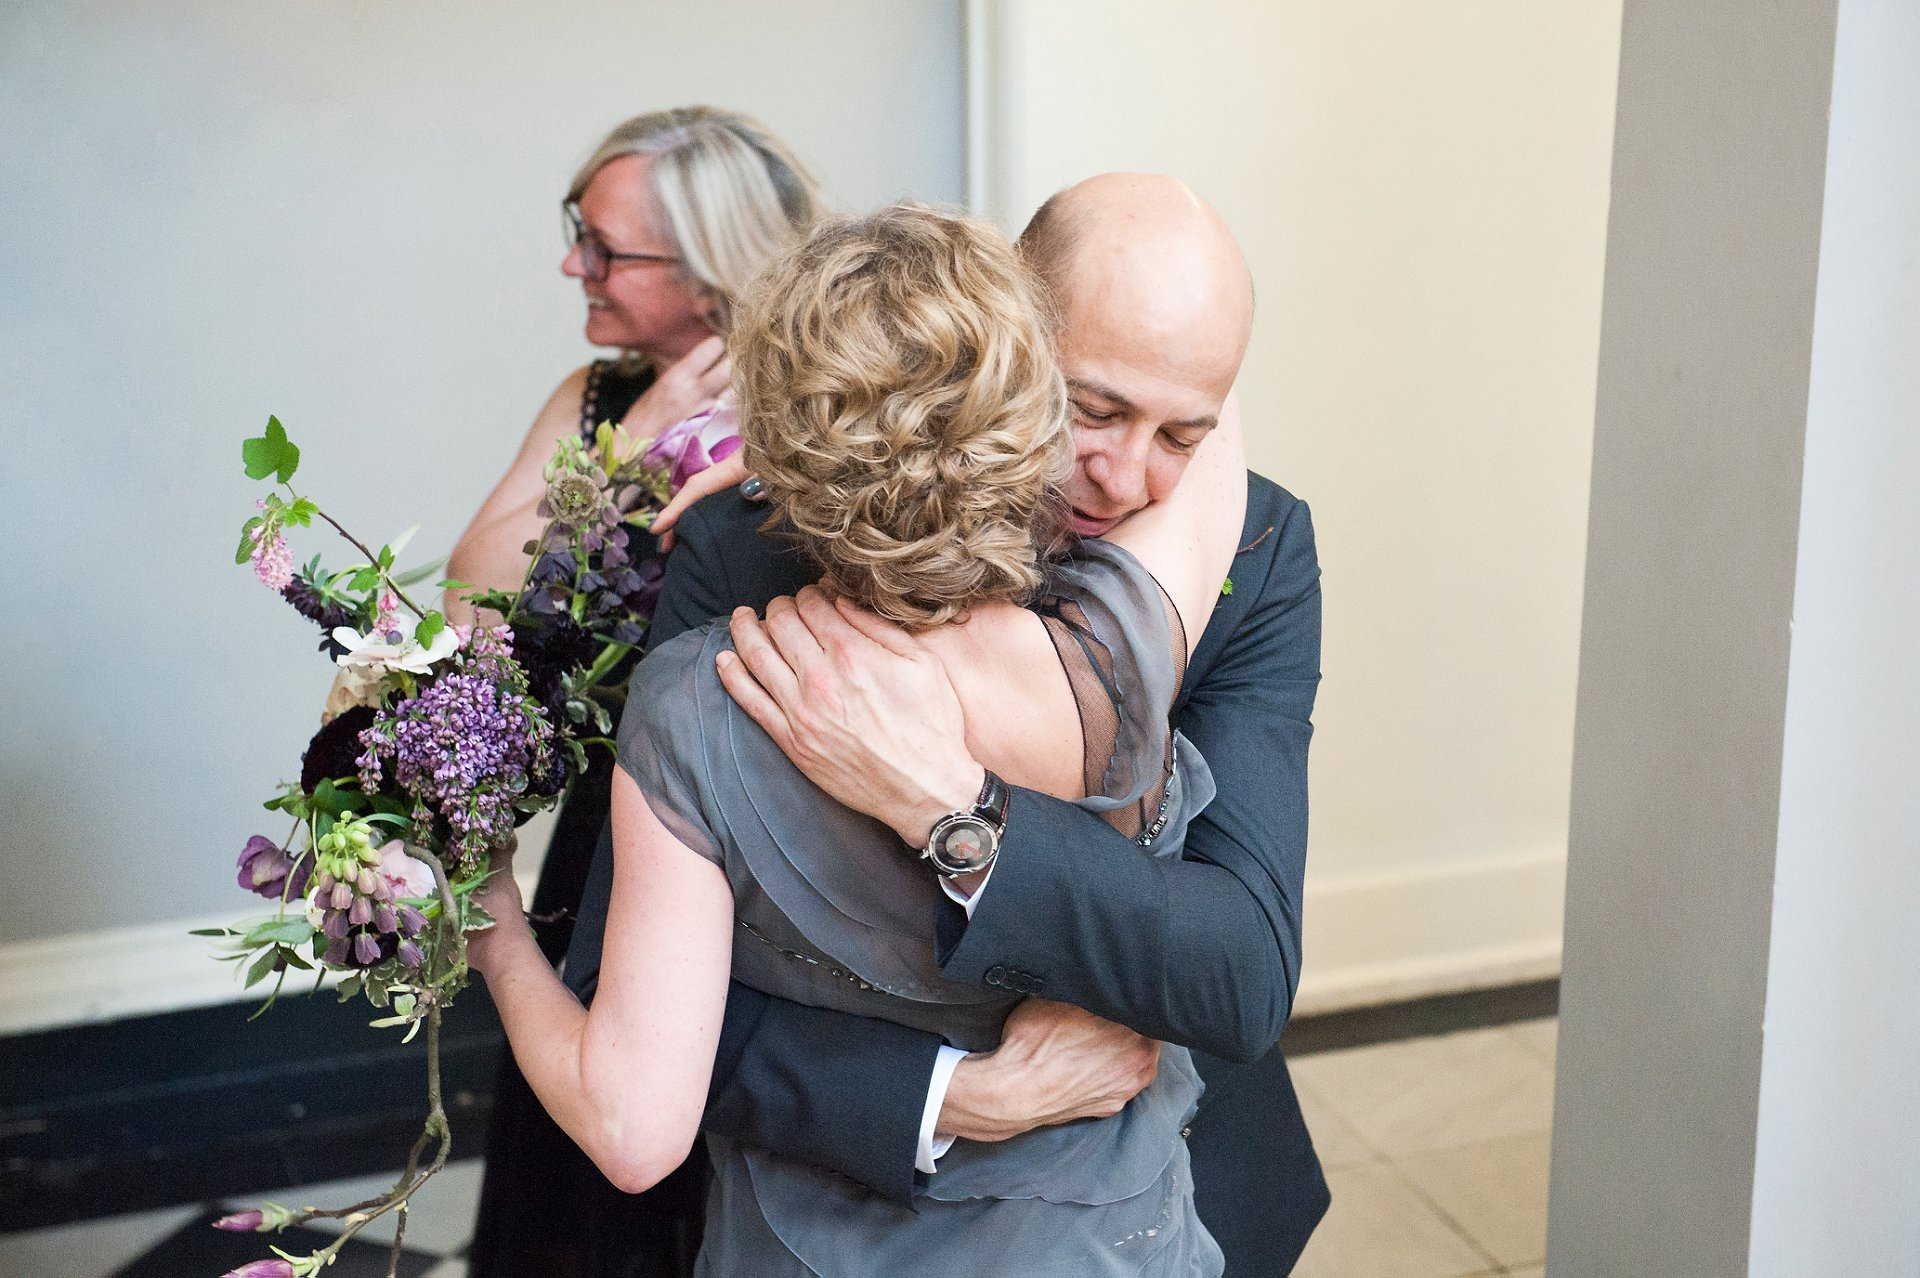 Bride and her Brother embrace after wedding ceremony in Greenwich Registry Office